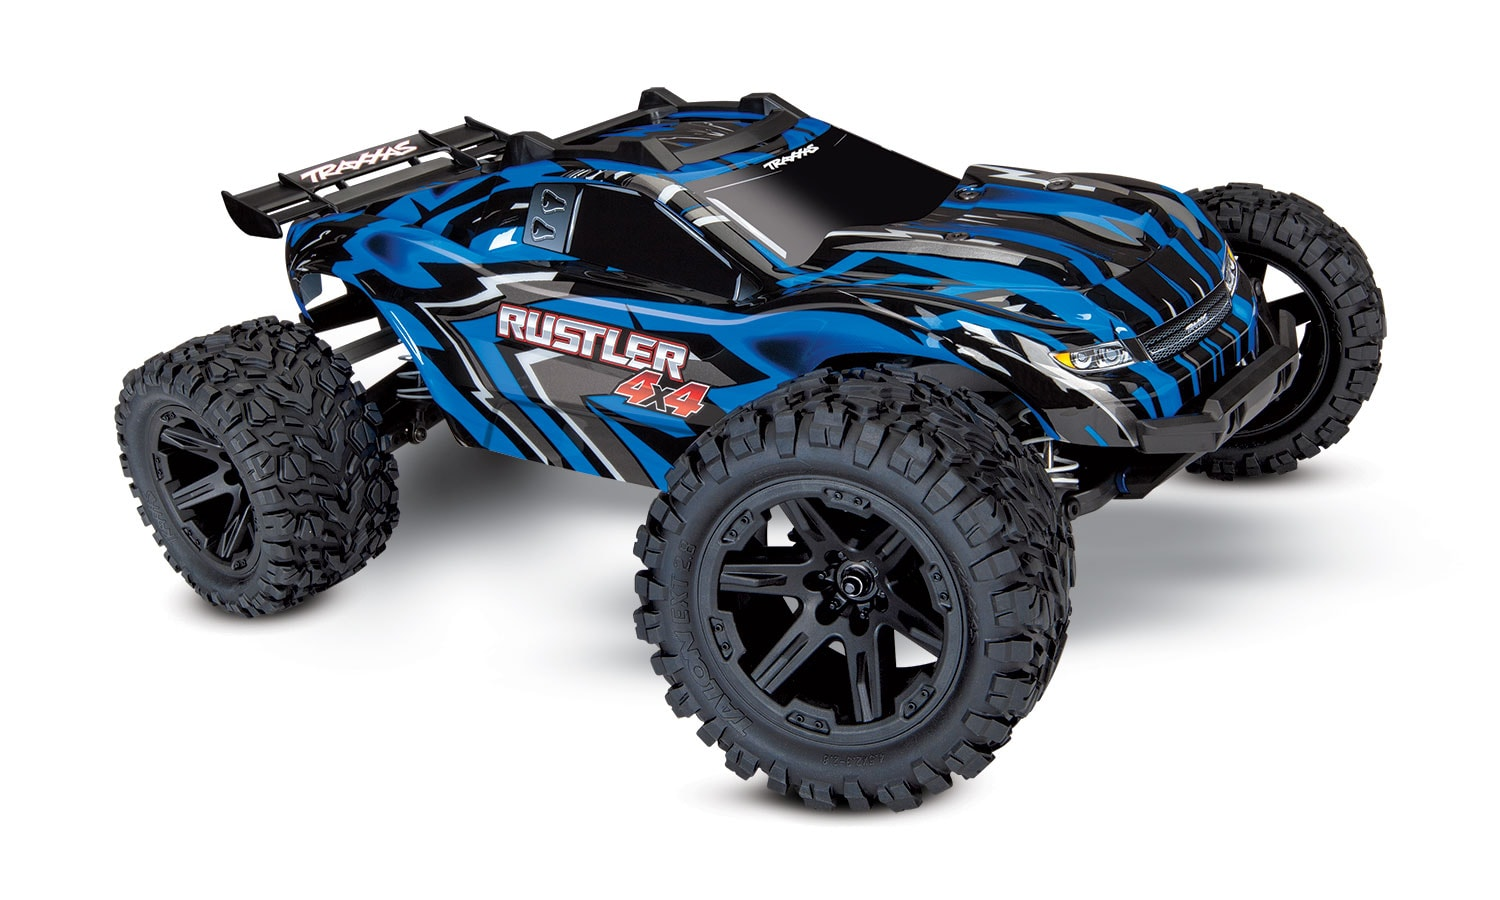 Traxxas Rustler 4×4 Stadium Truck, Now with Titan Power